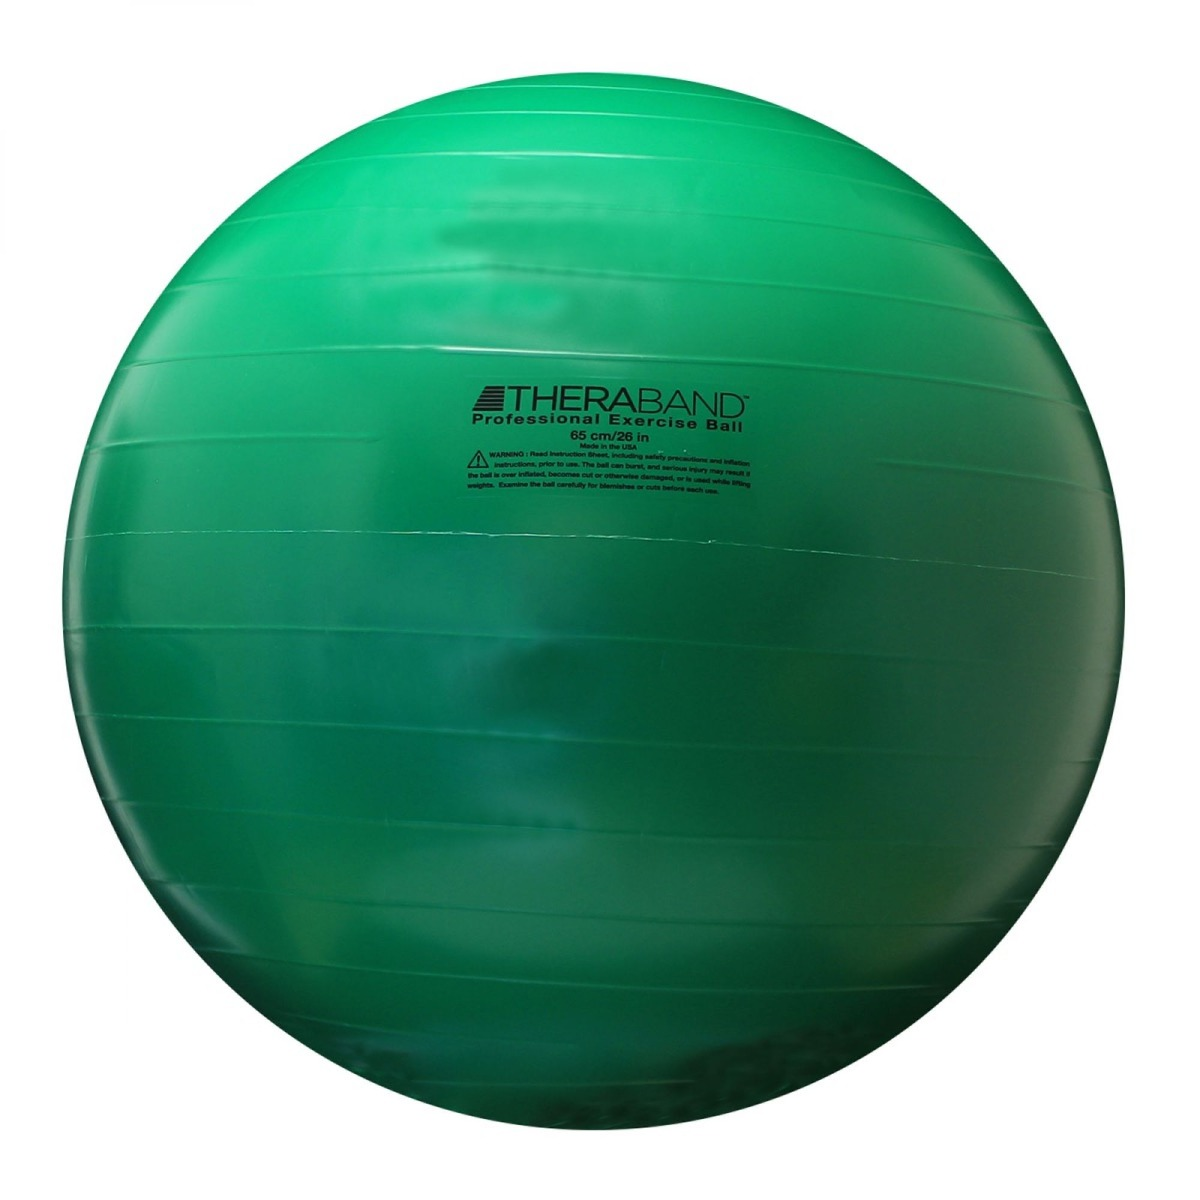 TheraBand Standard Exercise Ball, 65 cm, Green, Retail Pack